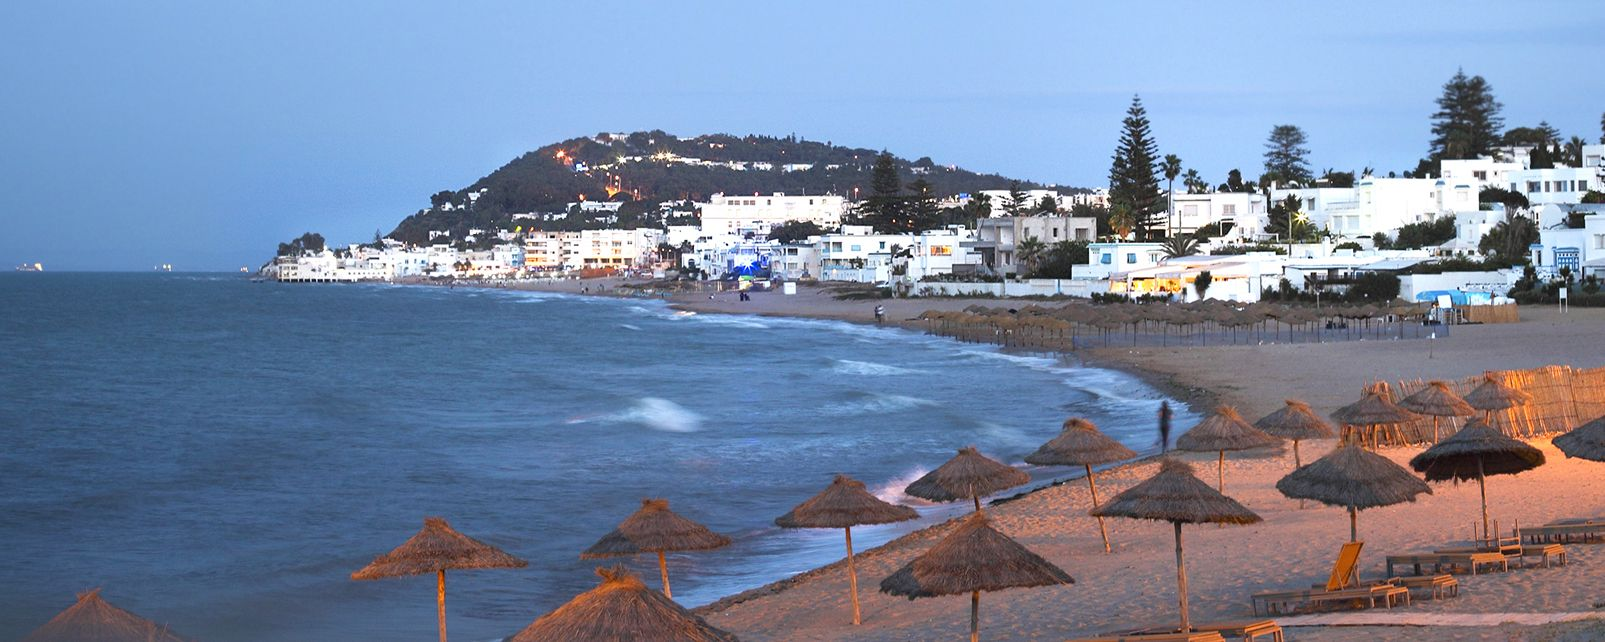 Gammarth, Tunisie,